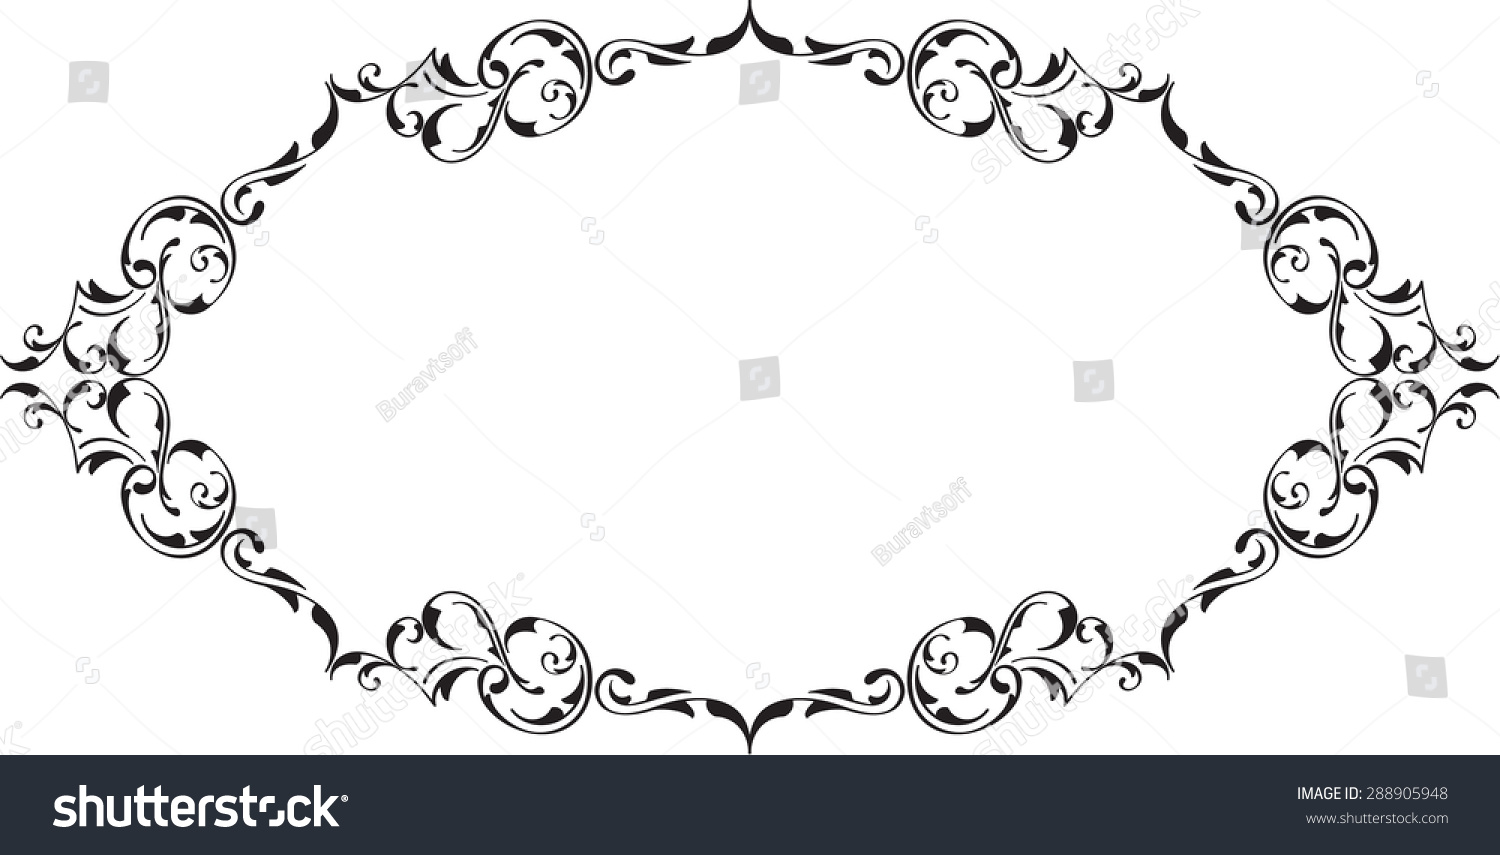 Scrolling Perfect Book Frame On White Stock Vector (Royalty Free ...